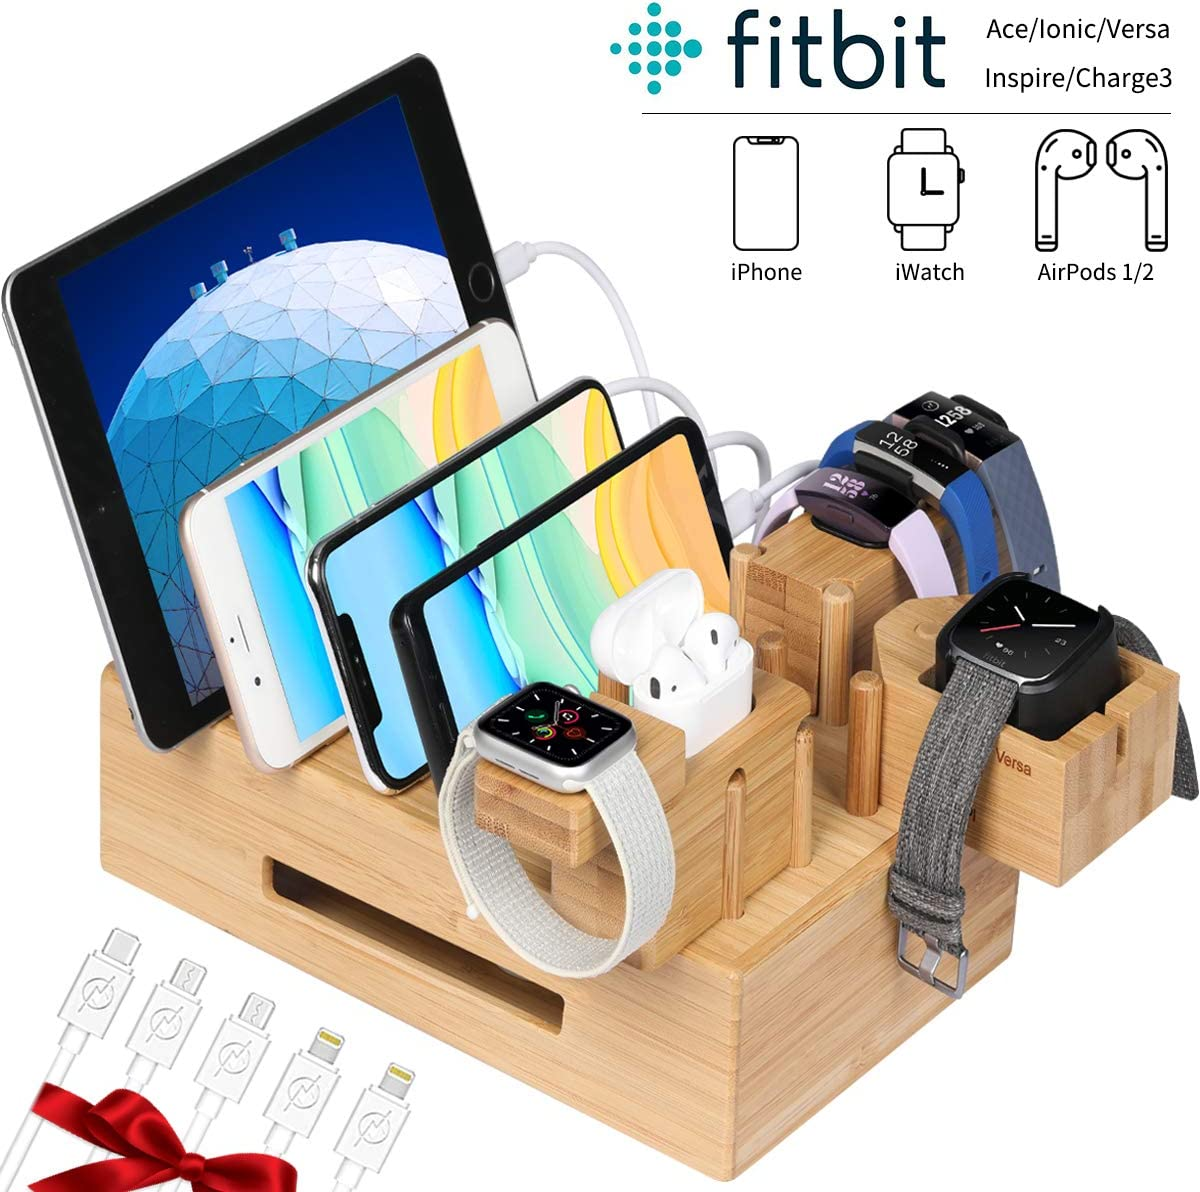 Bamboo Charging Station Organizer for Multiple Devices with iWatch and Airpods Stand, Fitbit Charging Stand | Desktop Docking Station Organizer(5 Cables Included, No USB Charger)